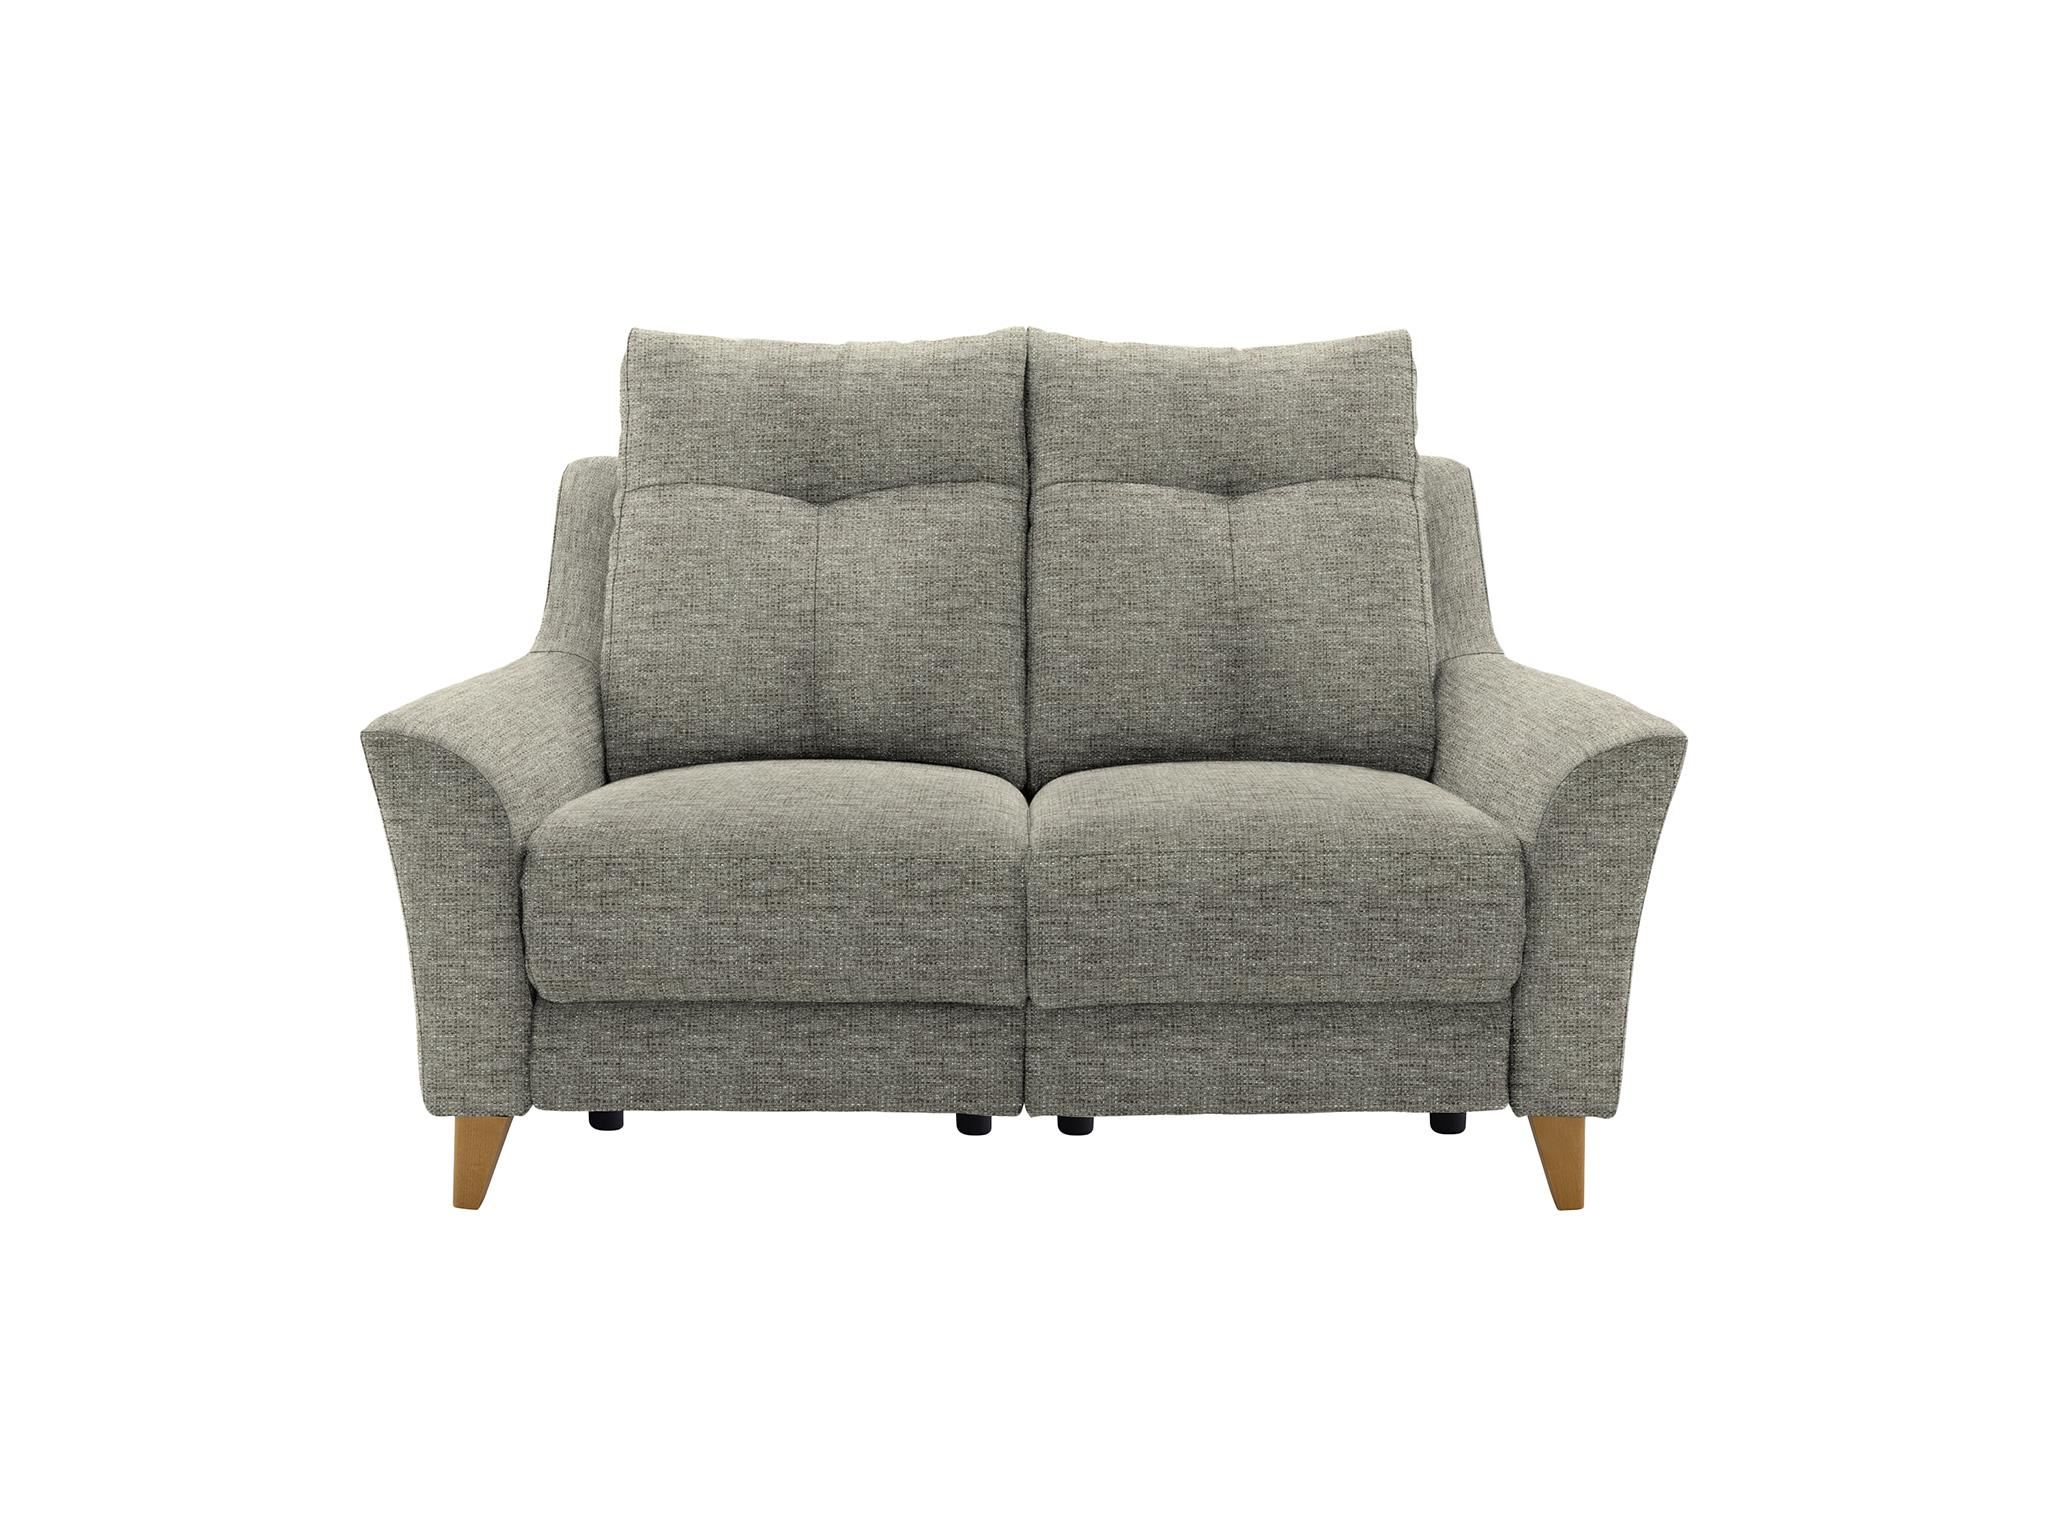 8 Best 2 Seater Sofas | The Independent Throughout London Optical Sofa Chairs (Image 3 of 25)